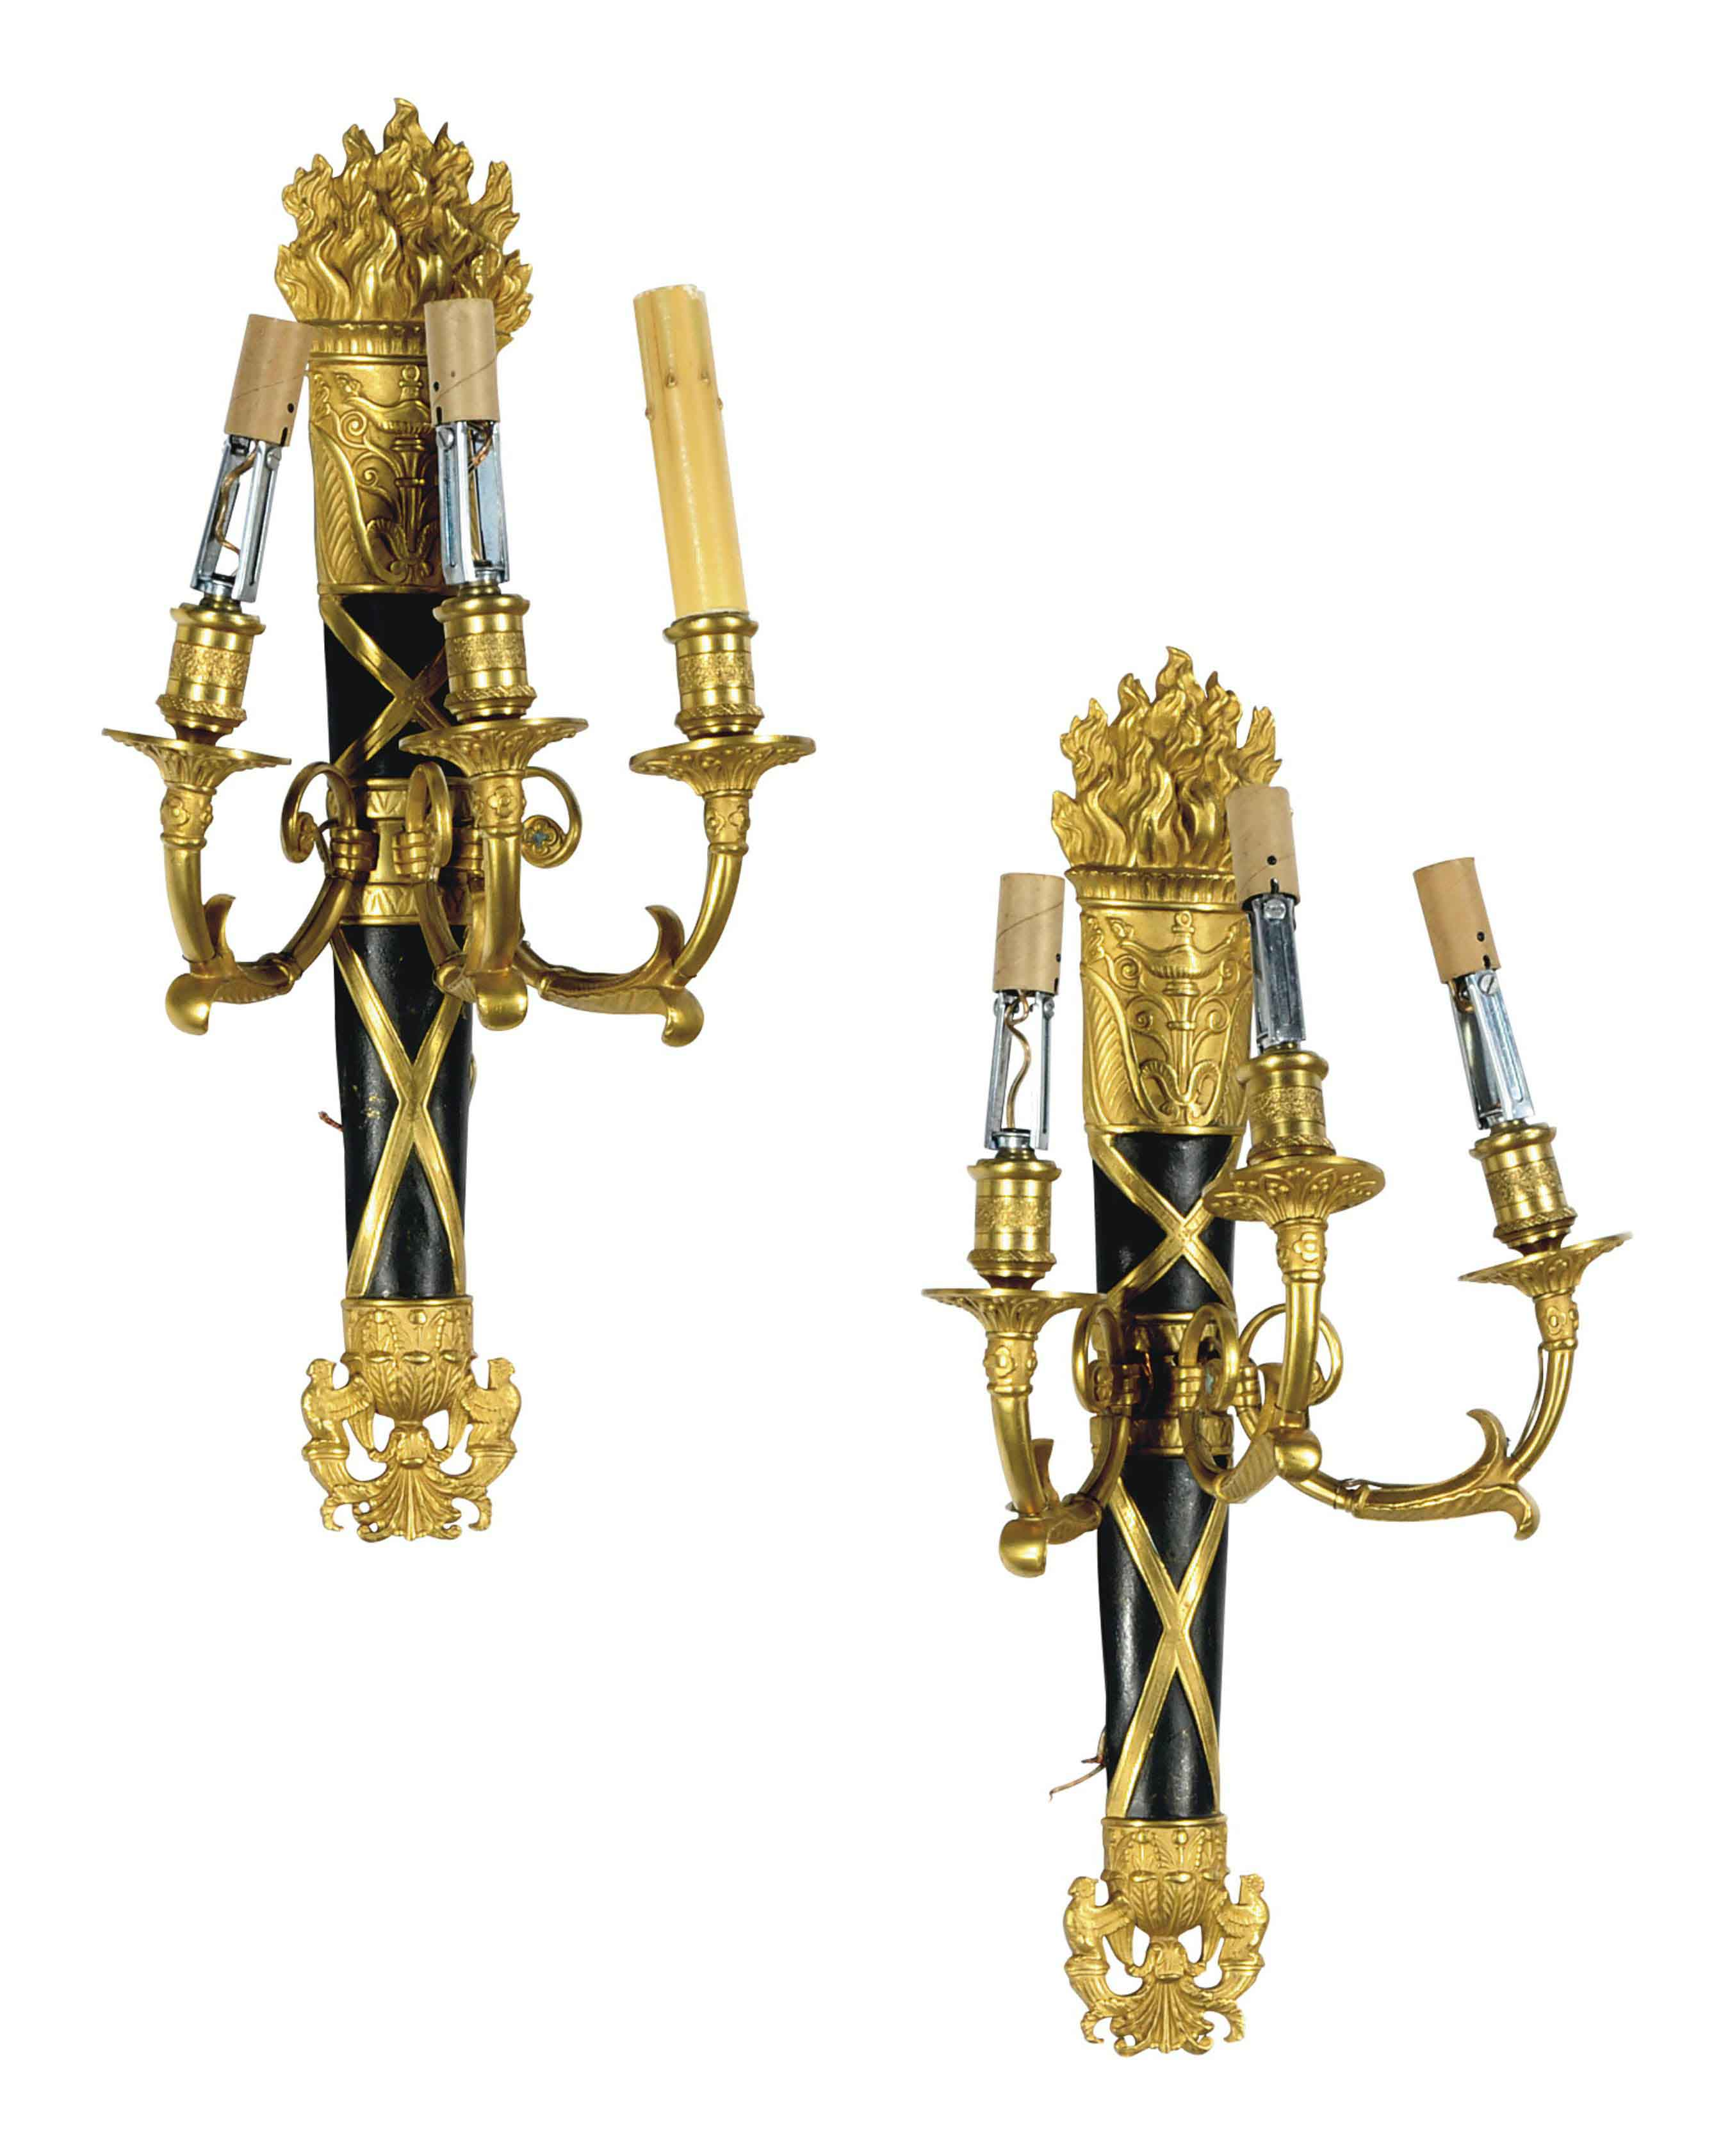 A PAIR OF FRENCH PATINATED AND GILT-BRONZE THREE-LIGHT WALL-LIGHTS,